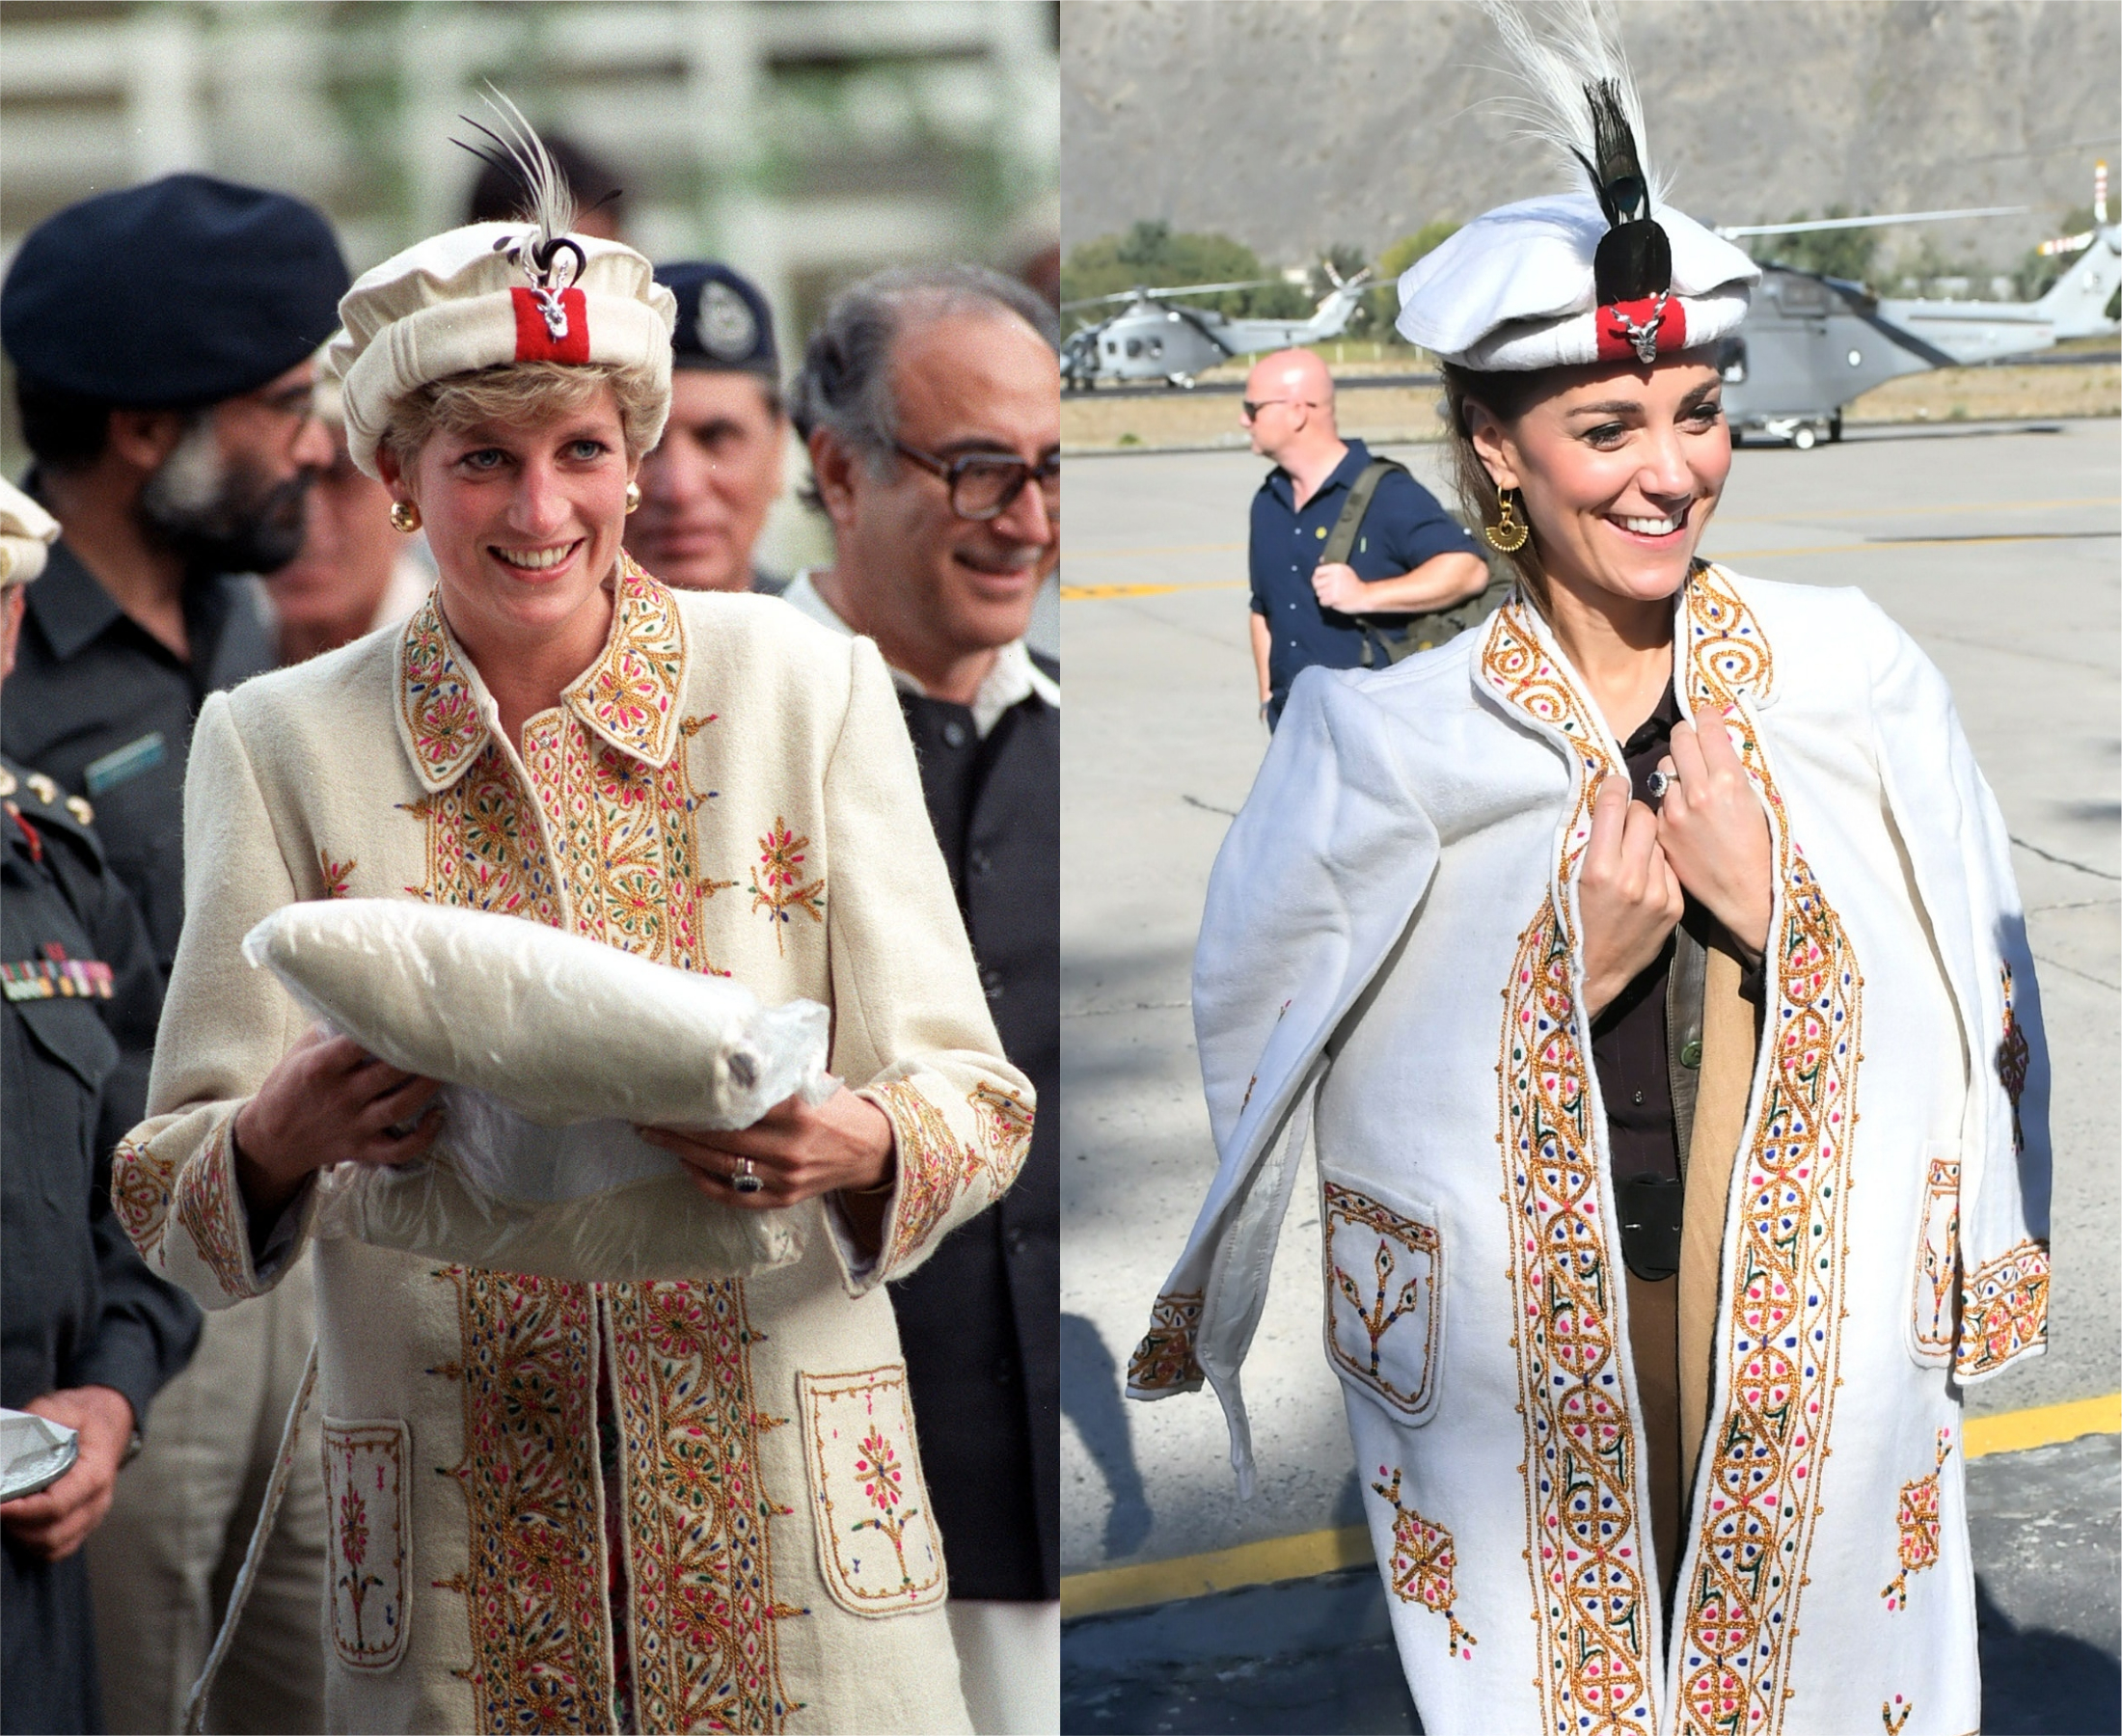 Diana wears a traditional hat and jacket in 1991 and Kate does the same in 2019